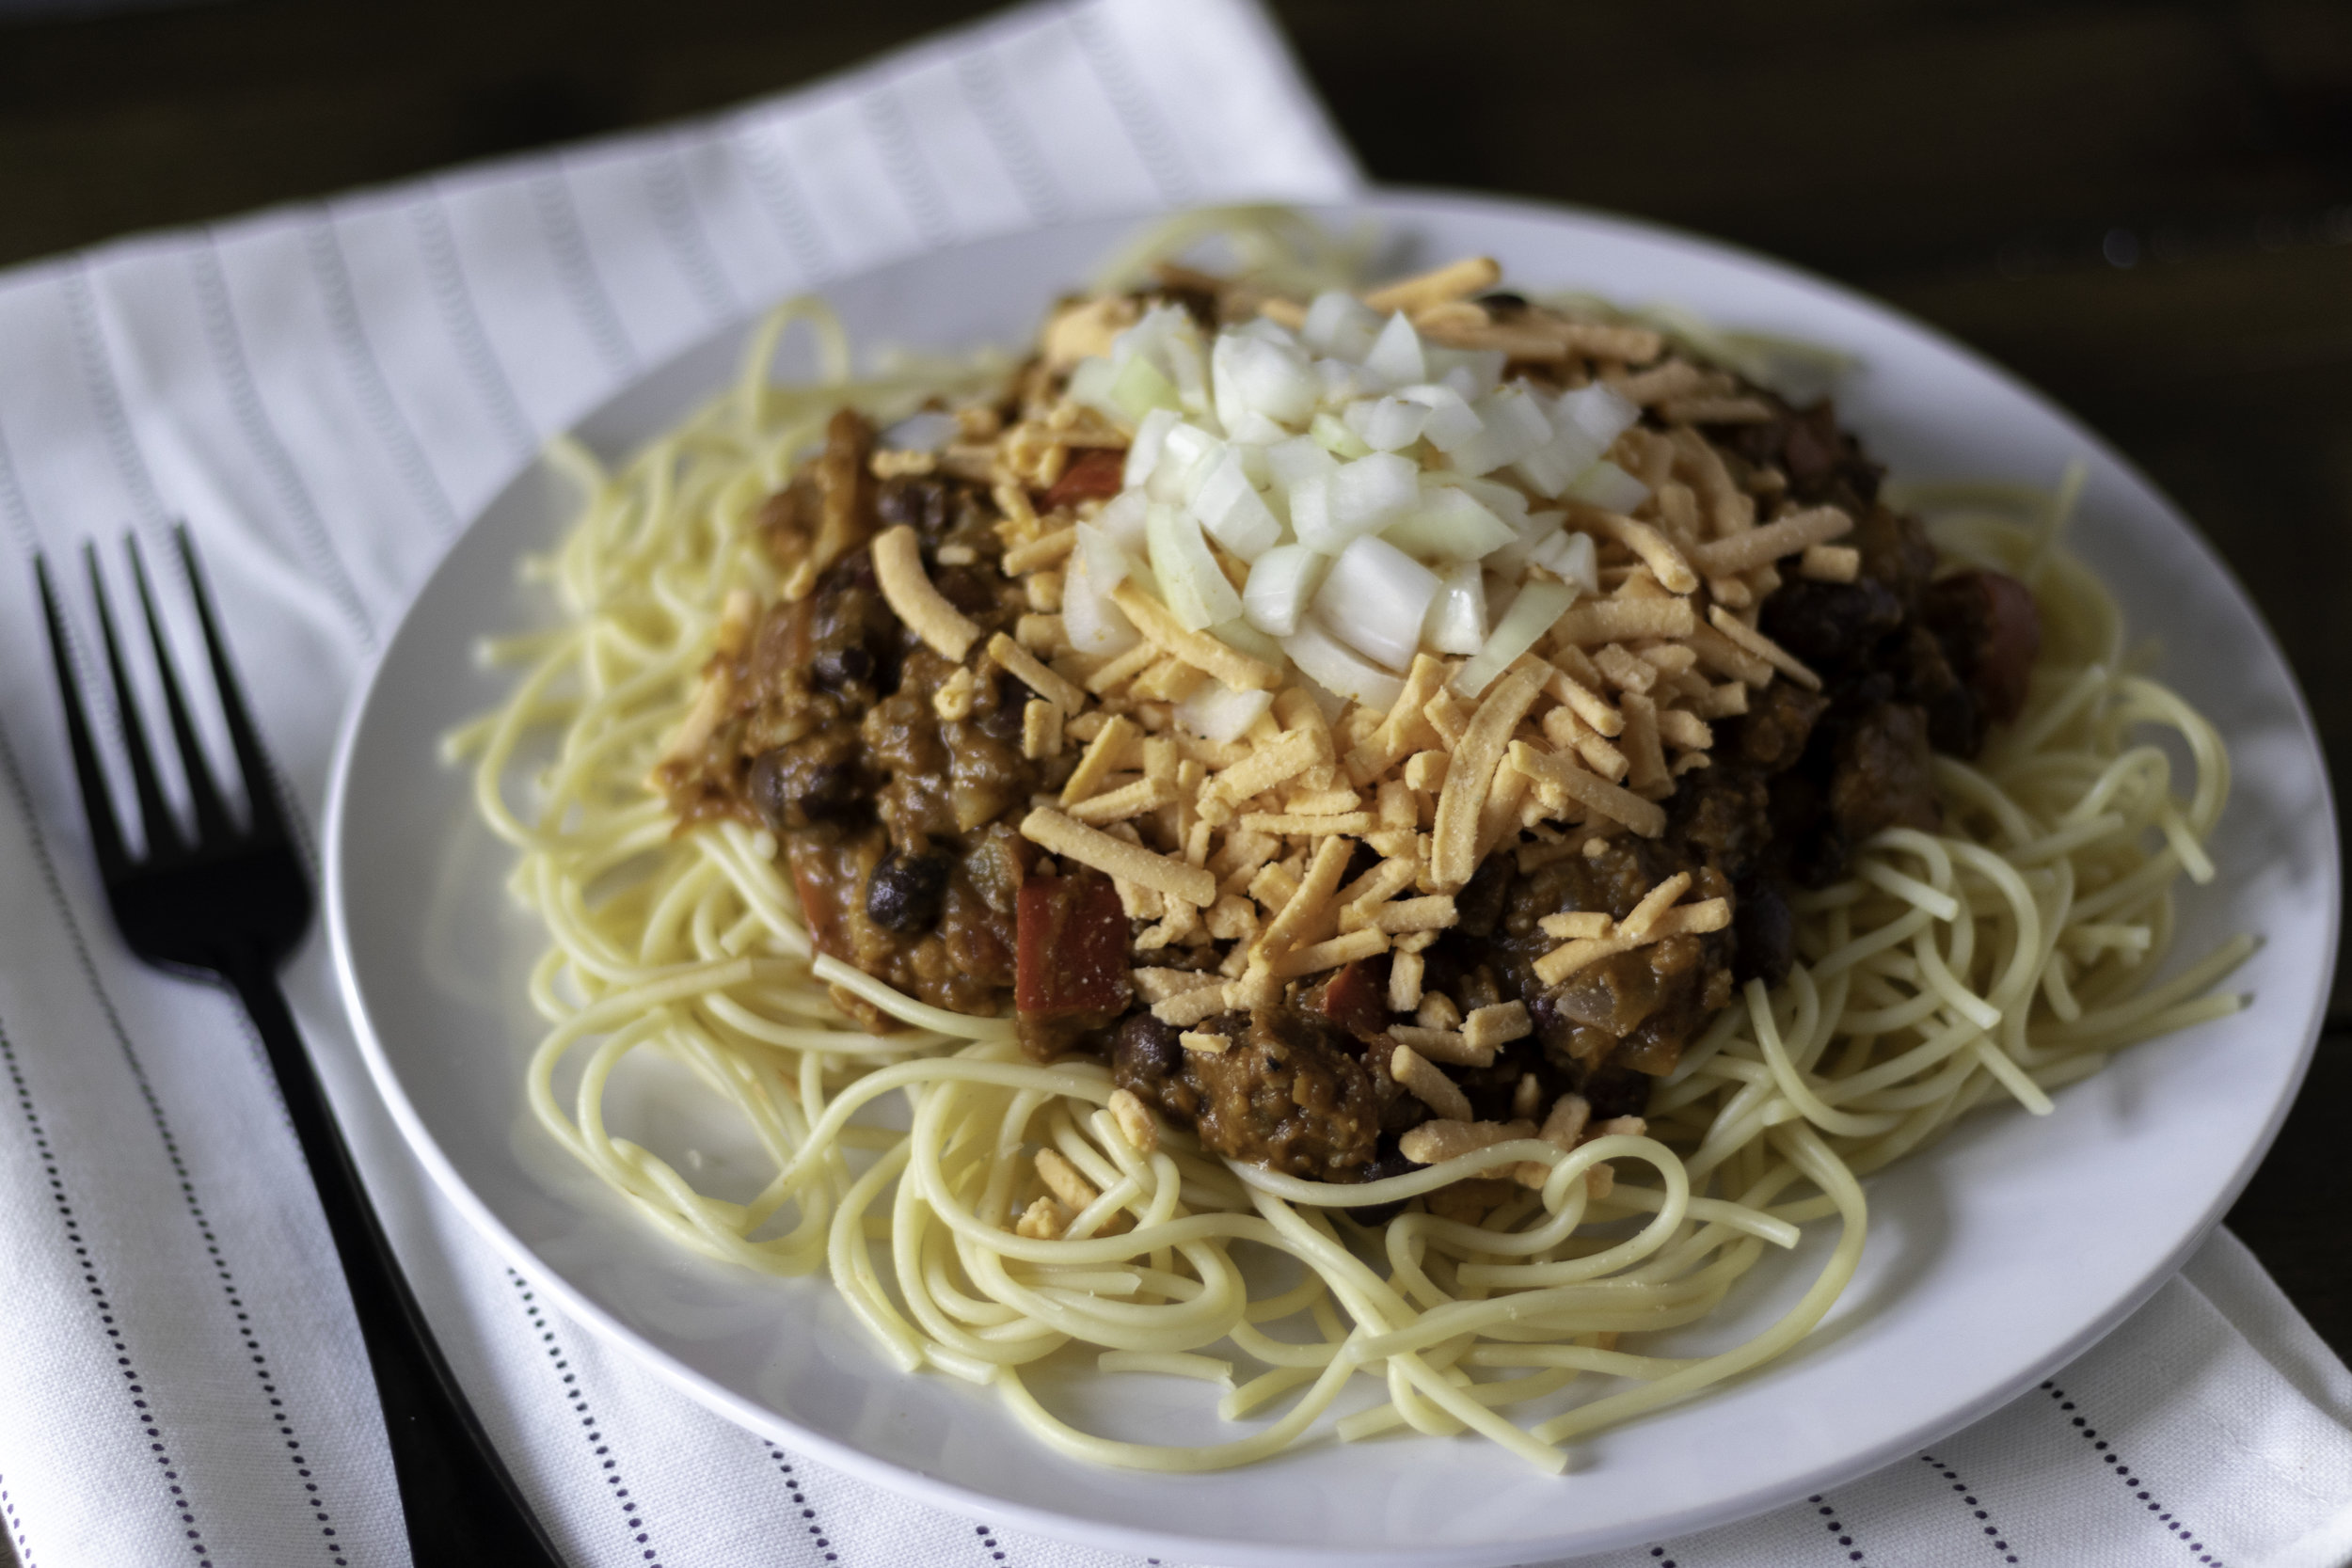 I grew up in the south, so Cincinnati chili is not something I had ever even heard of until I was a teenager. It seemed very odd to me to be topping pasta with chili and cheese, and I could not get behind this idea. That was until I was an adult and a friend served it to me. I HAD BEEN SO WRONG. Not only does it work, but it's delicious. I hate to admit it, but obviously we don't know everything here in the south, because we didn't know about this magic! Also, don't worry about the pumpkin in this Cincinnati chili recipe. It just makes it a little less acidic since we are using less tomato than usual. It adds a thickness we need, and along with the cauliflower and beans, makes for a super healthy and hearty chili! So if you are from the south and have never had Cincinnati chili either, just do it. I promise we will not revoke your southern card!